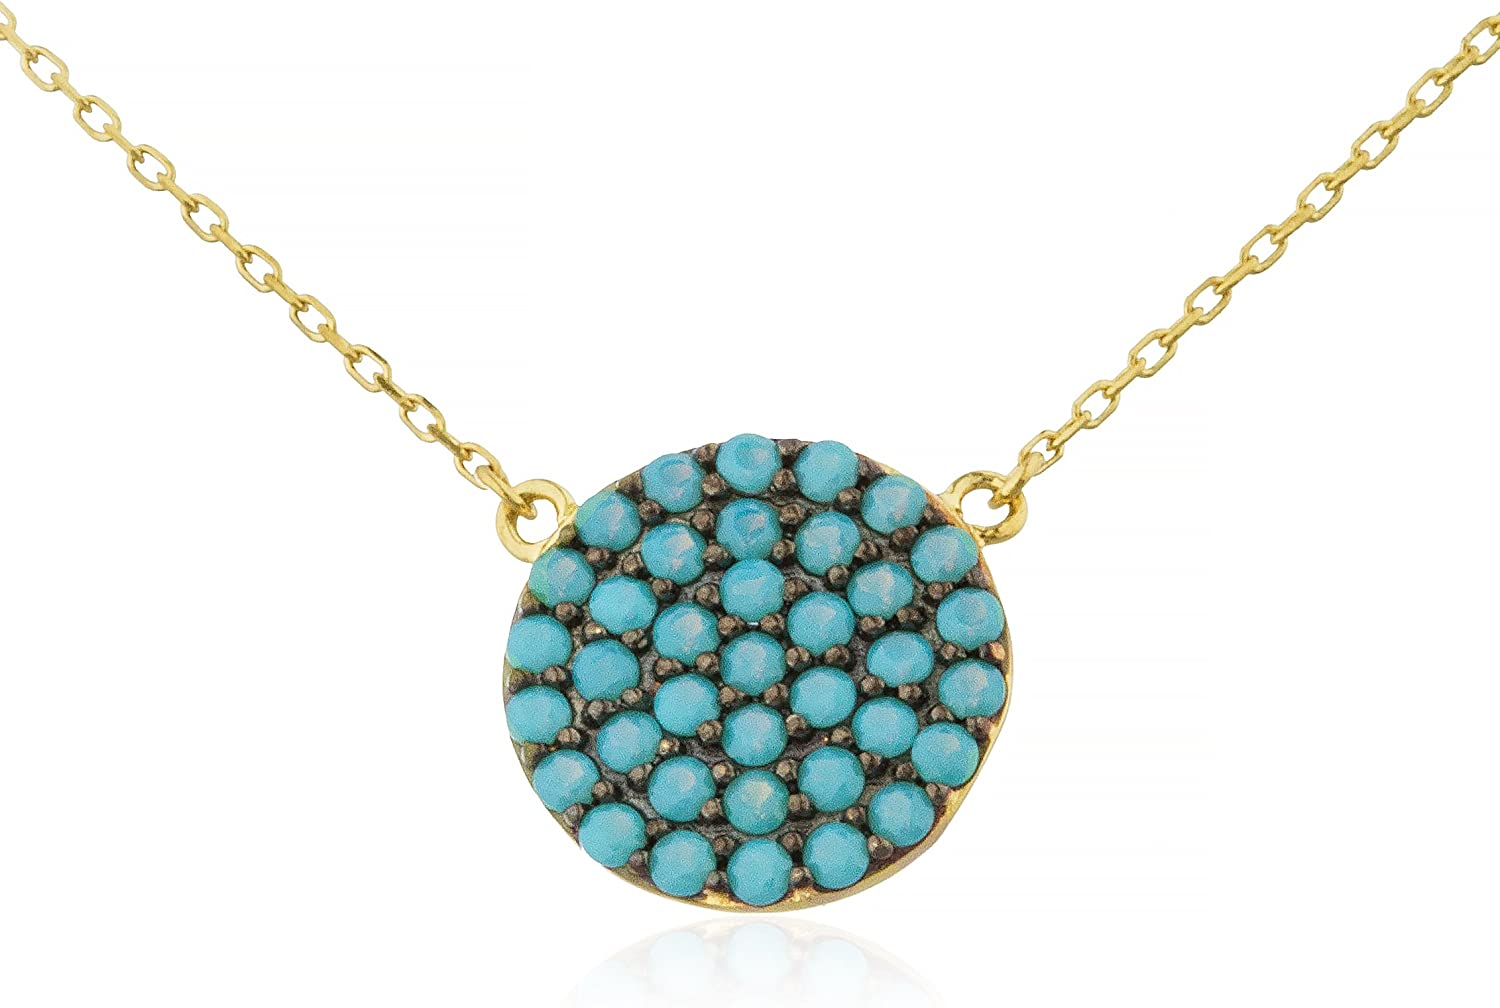 14k gold 12mm Round Pendant with 18 inch DCut Link Necklace